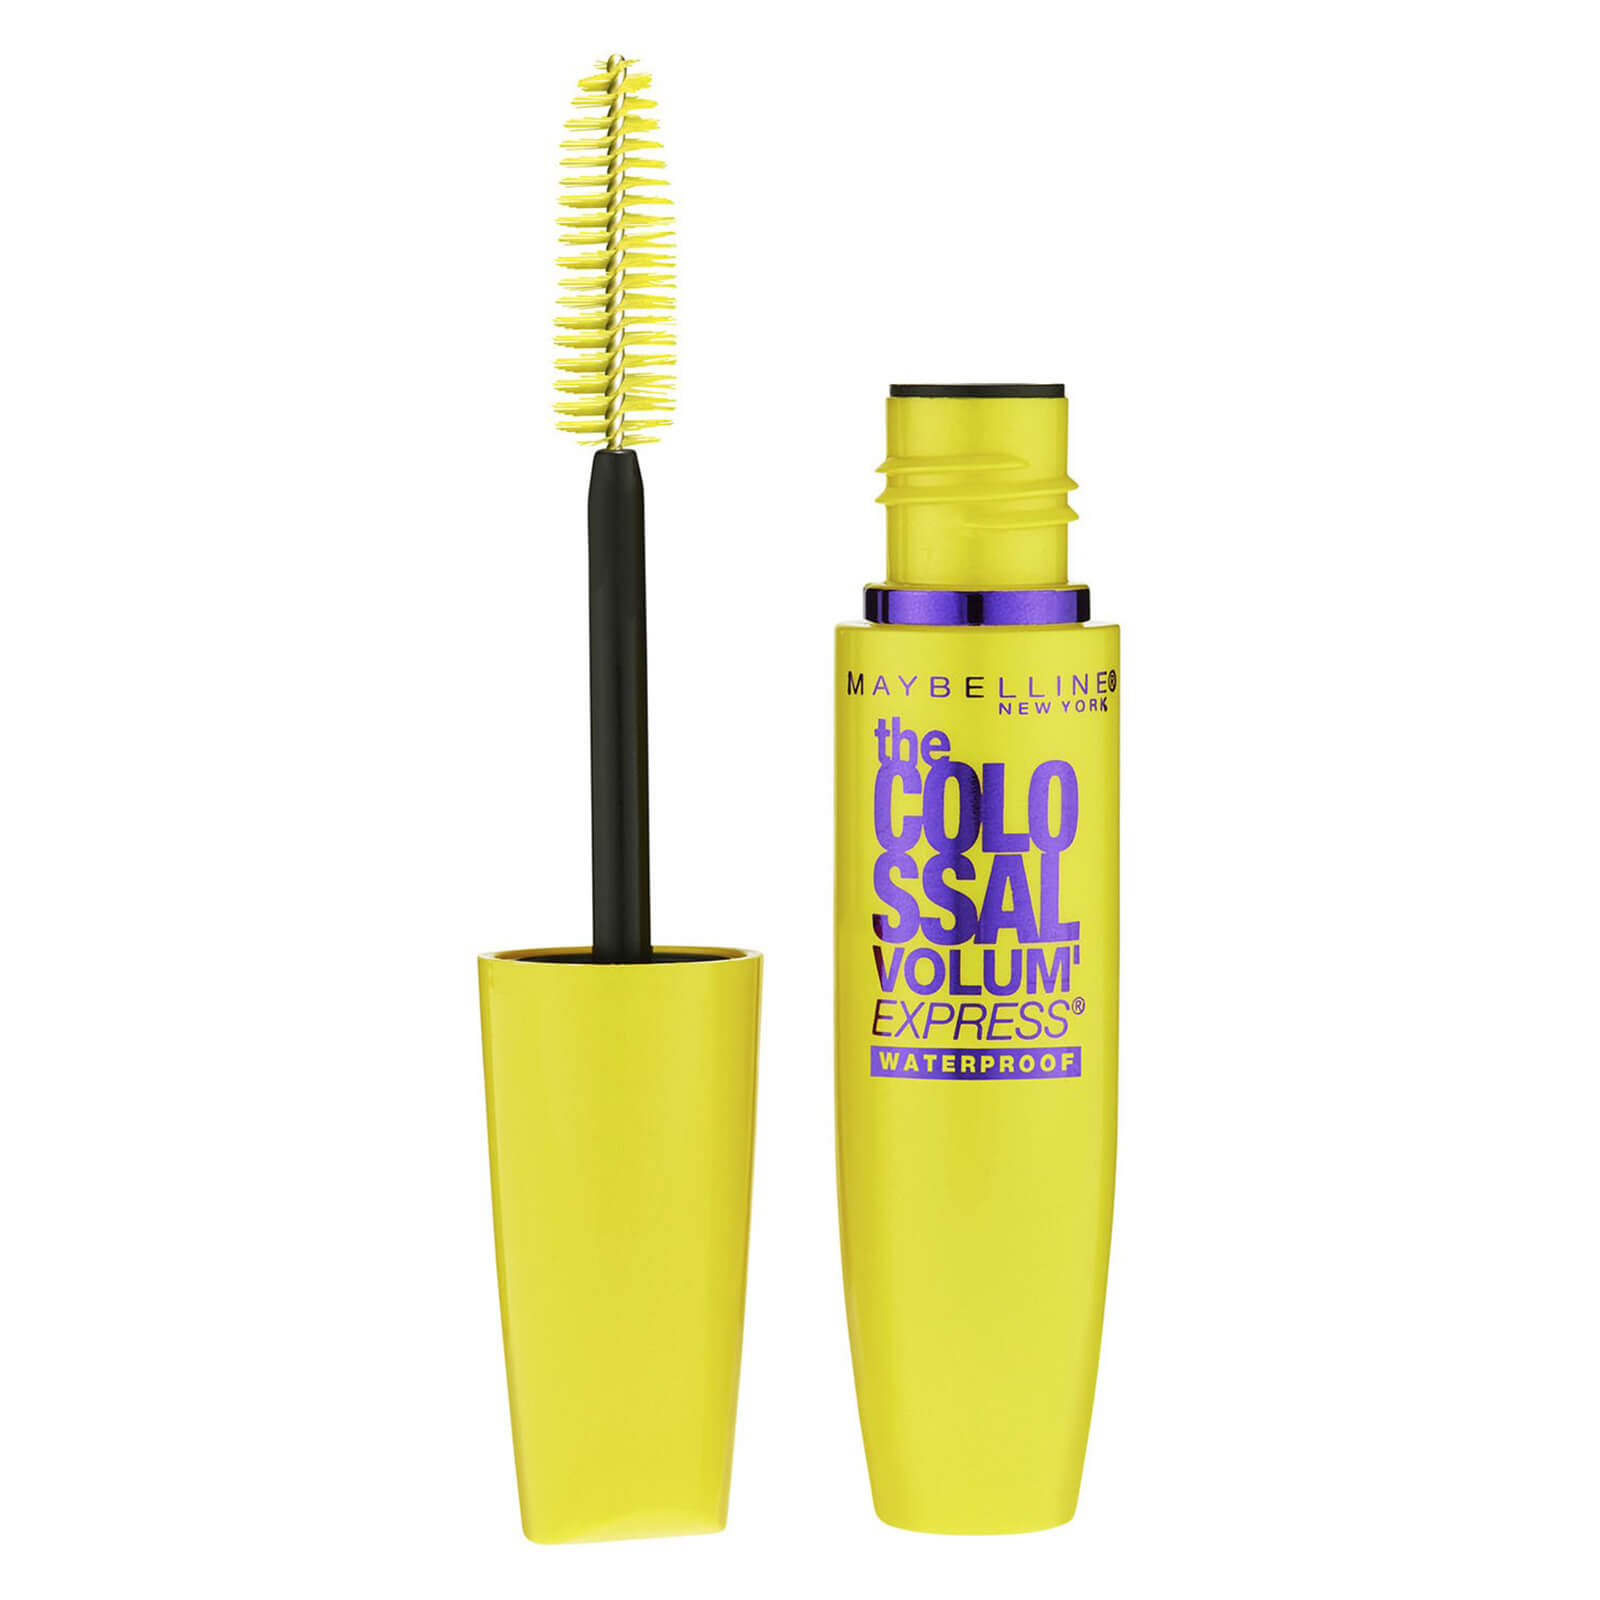 001c6ba26d8 Maybelline Colossal Waterproof Mascara | Buy Online At RY